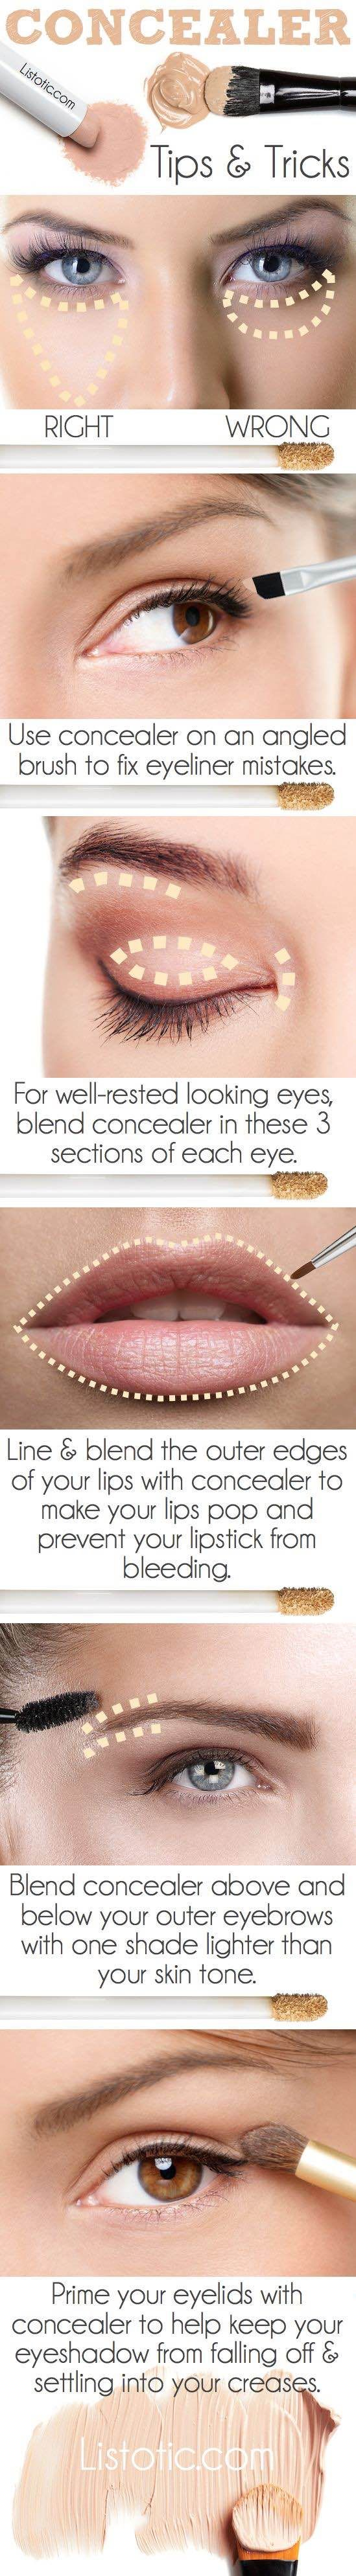 How to use concealer the right way for a flawless face! Image via Listotic.com